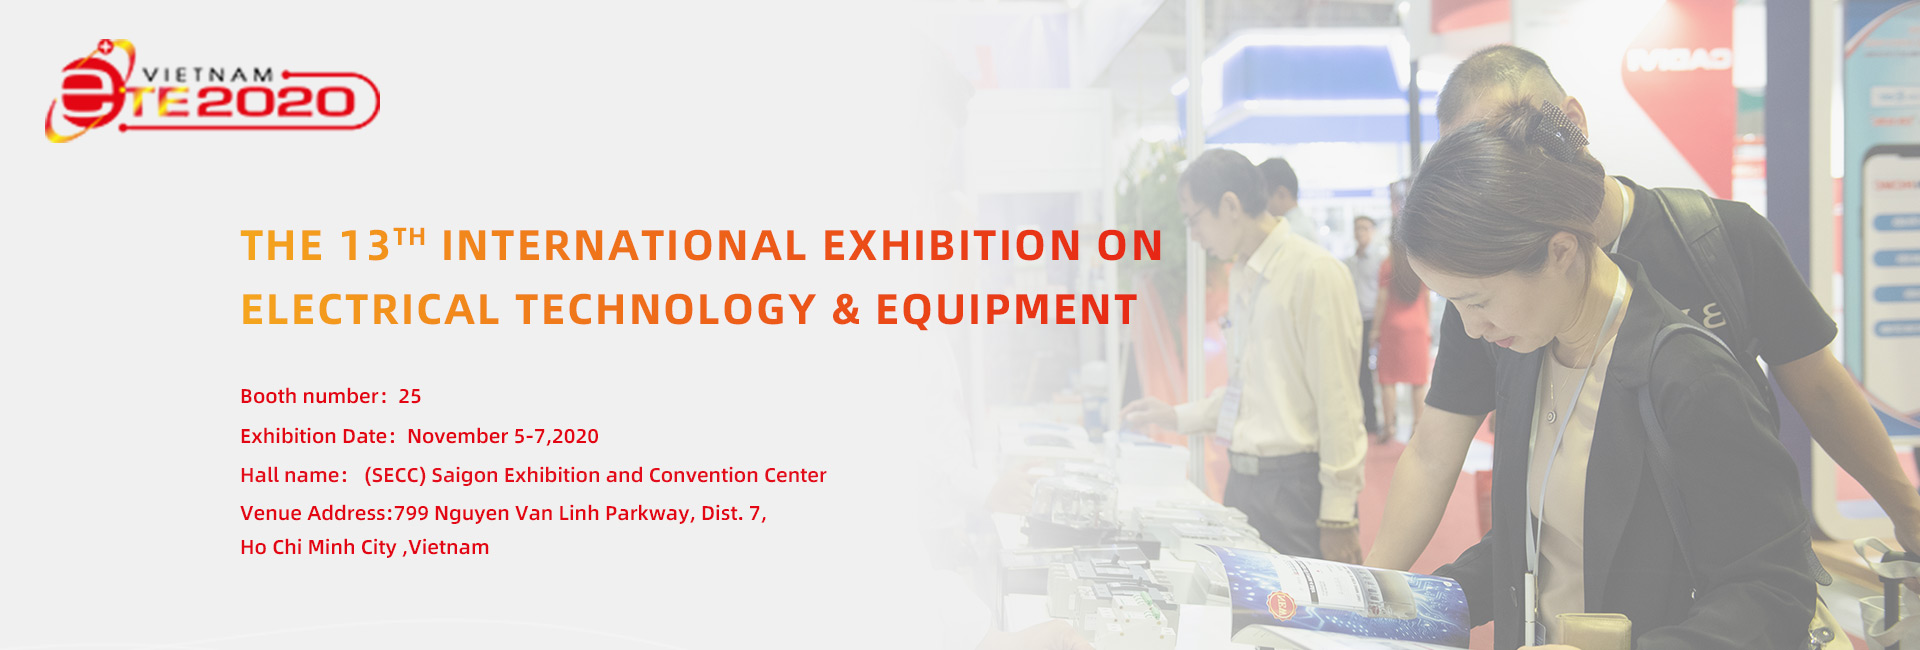 THE 13TH INTERNATIONAL EXHIBITION ON  ELECTRICAL TECHNOLOGY & EQUIPMENT